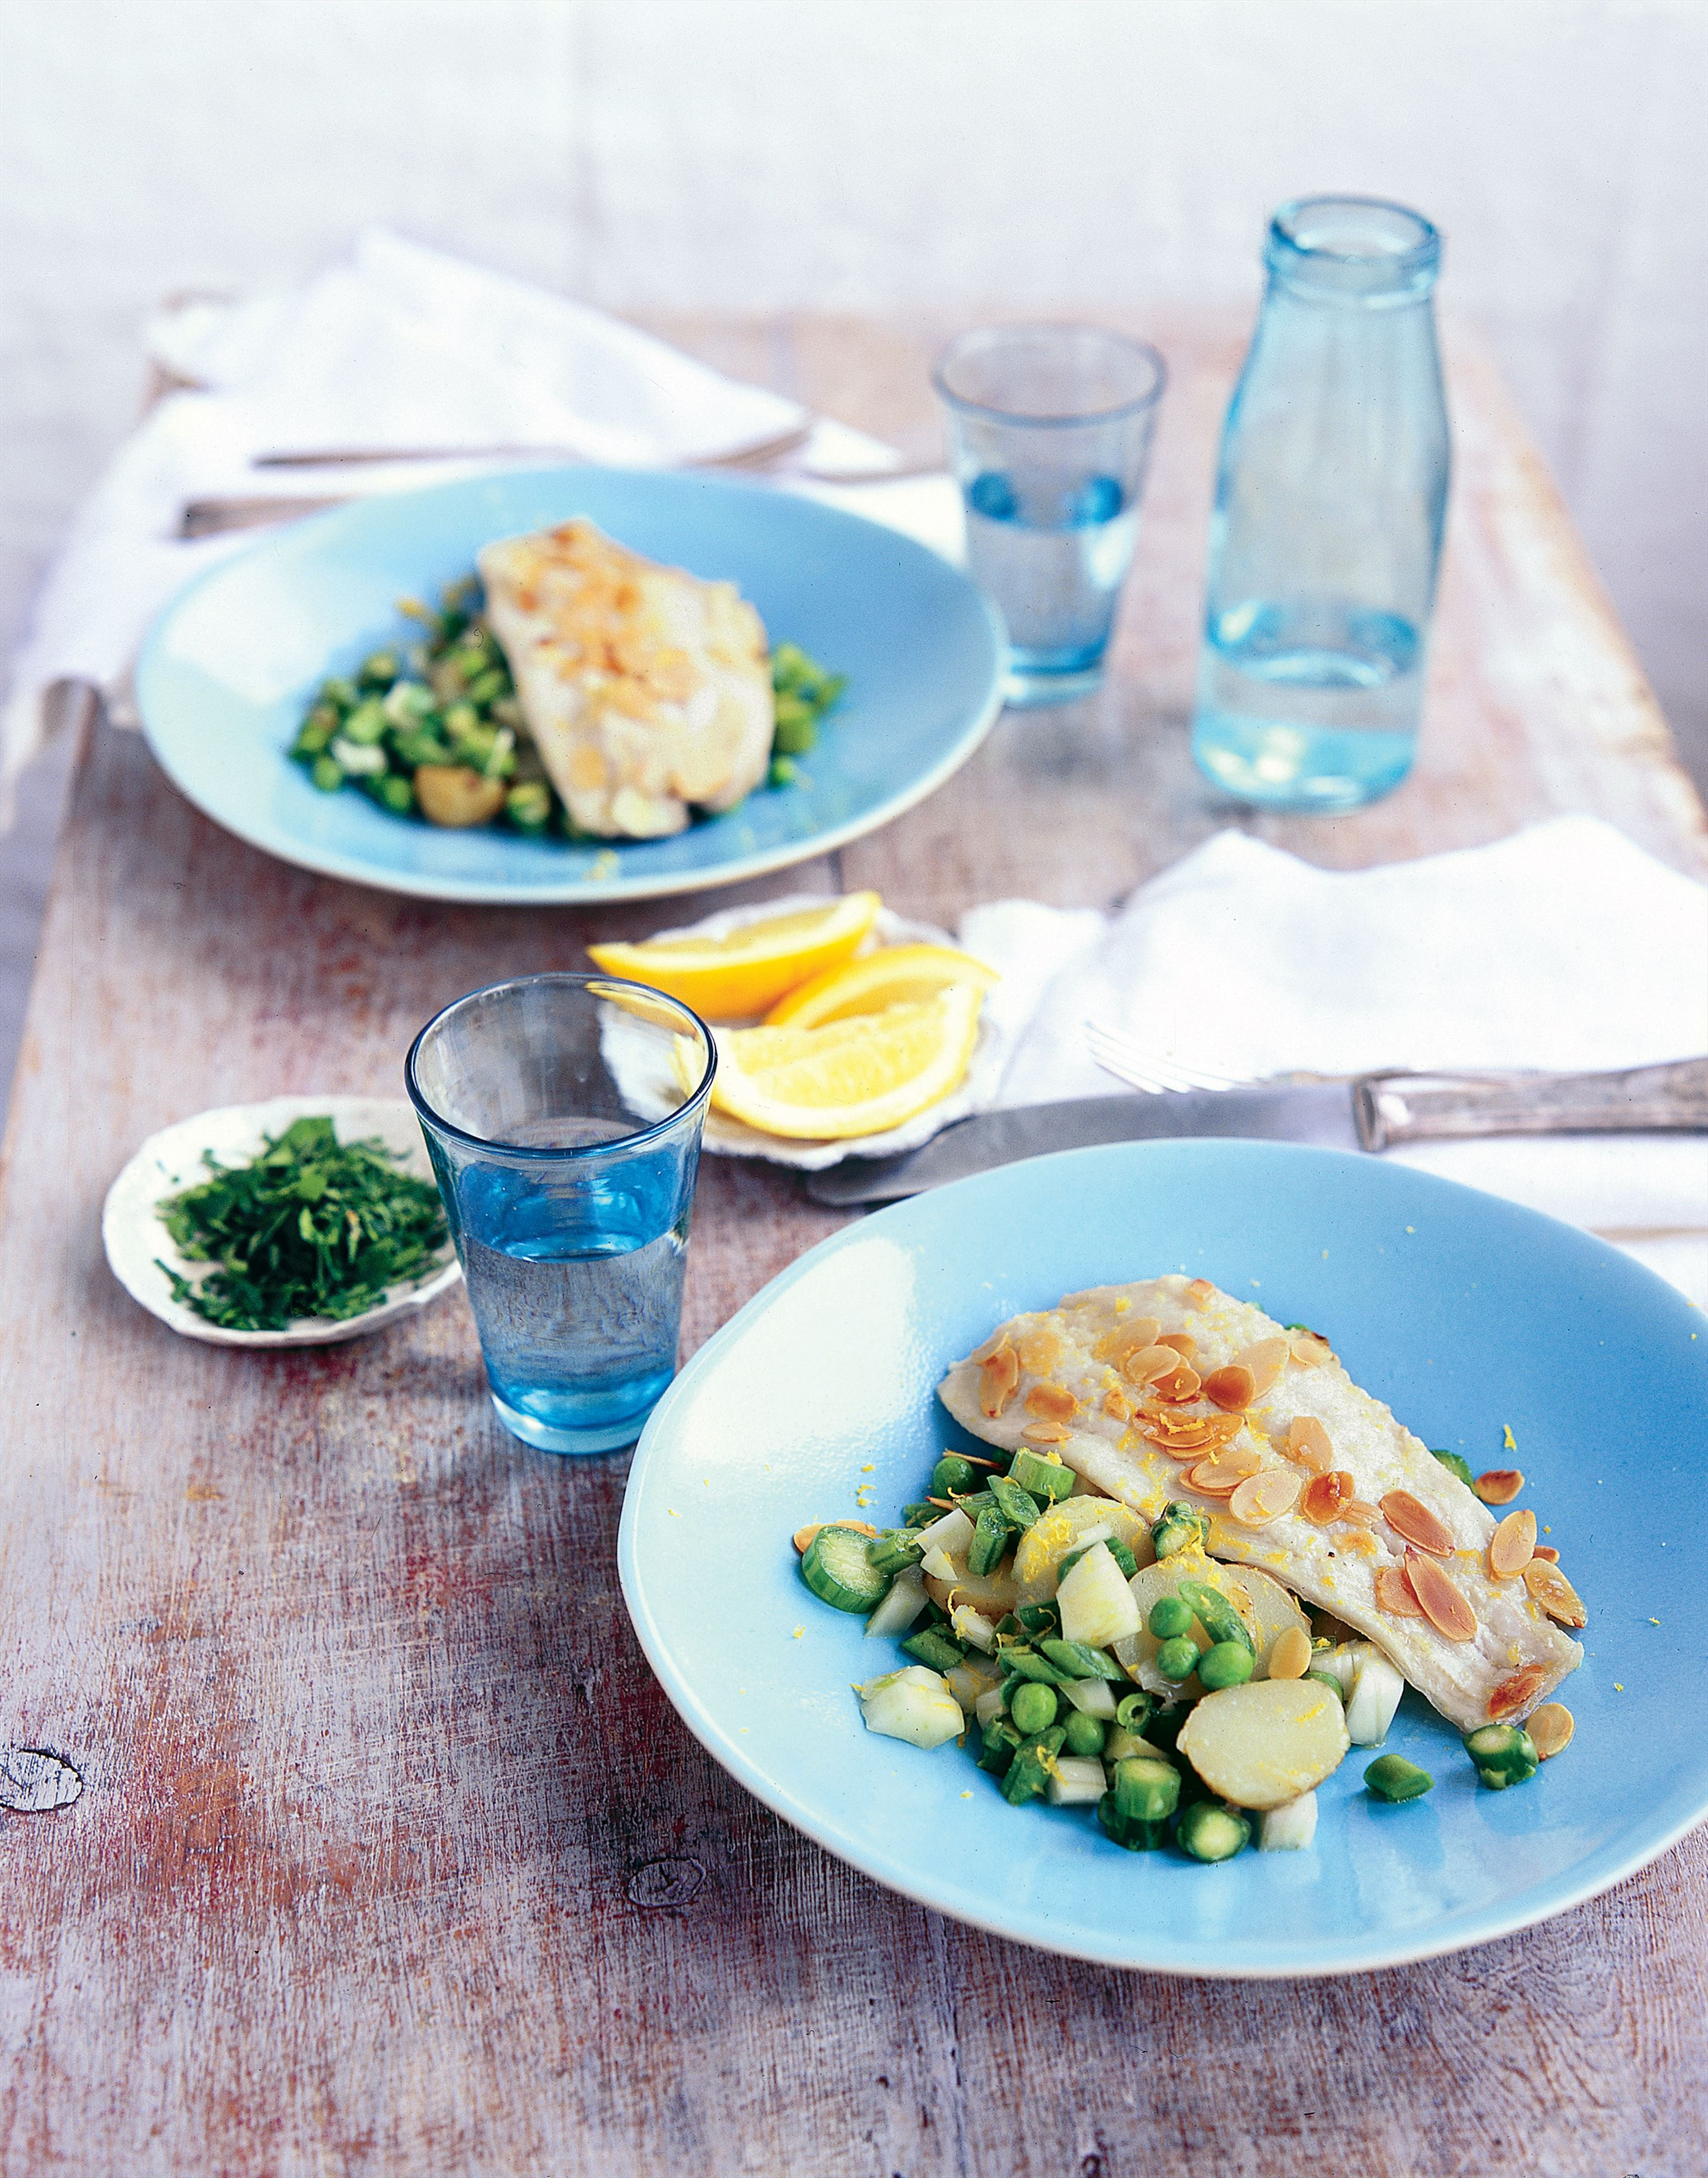 Grilled sole with lemon, almonds and parsley